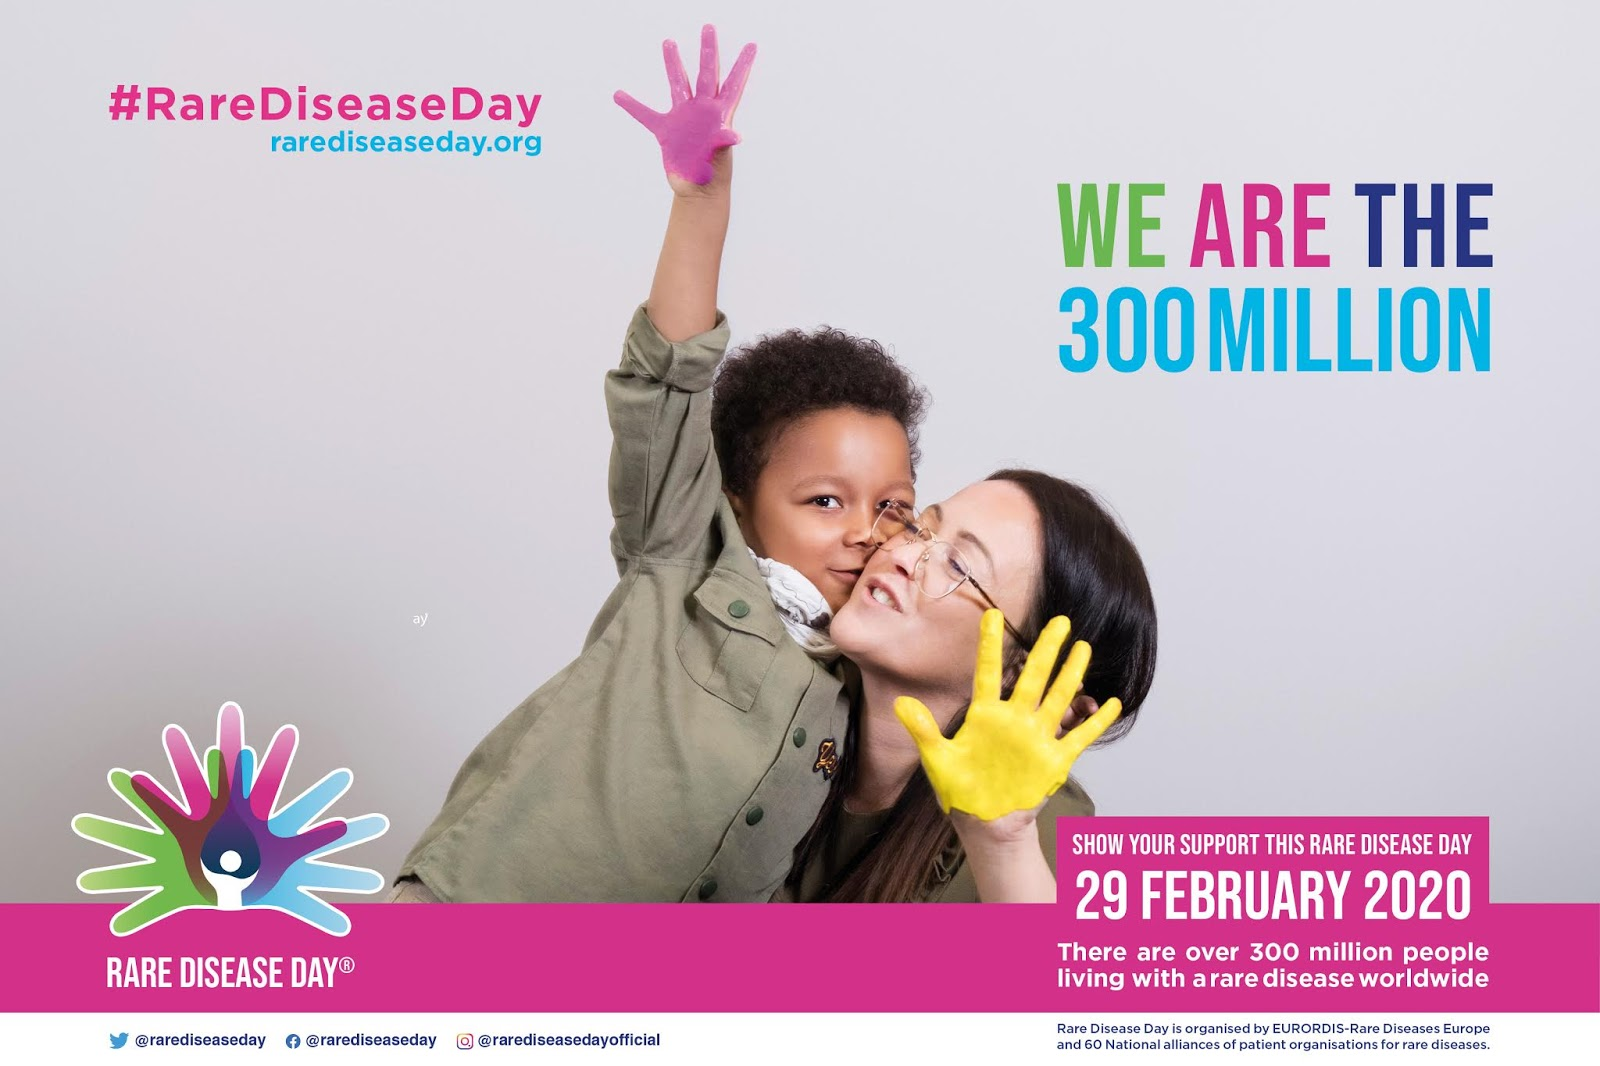 Rare Disease Day takes place on the last day of February each year. The main objective of Rare Disease Day is to raise awareness amongst the general public and decision-makers about rare diseases and their impact on patients' lives.